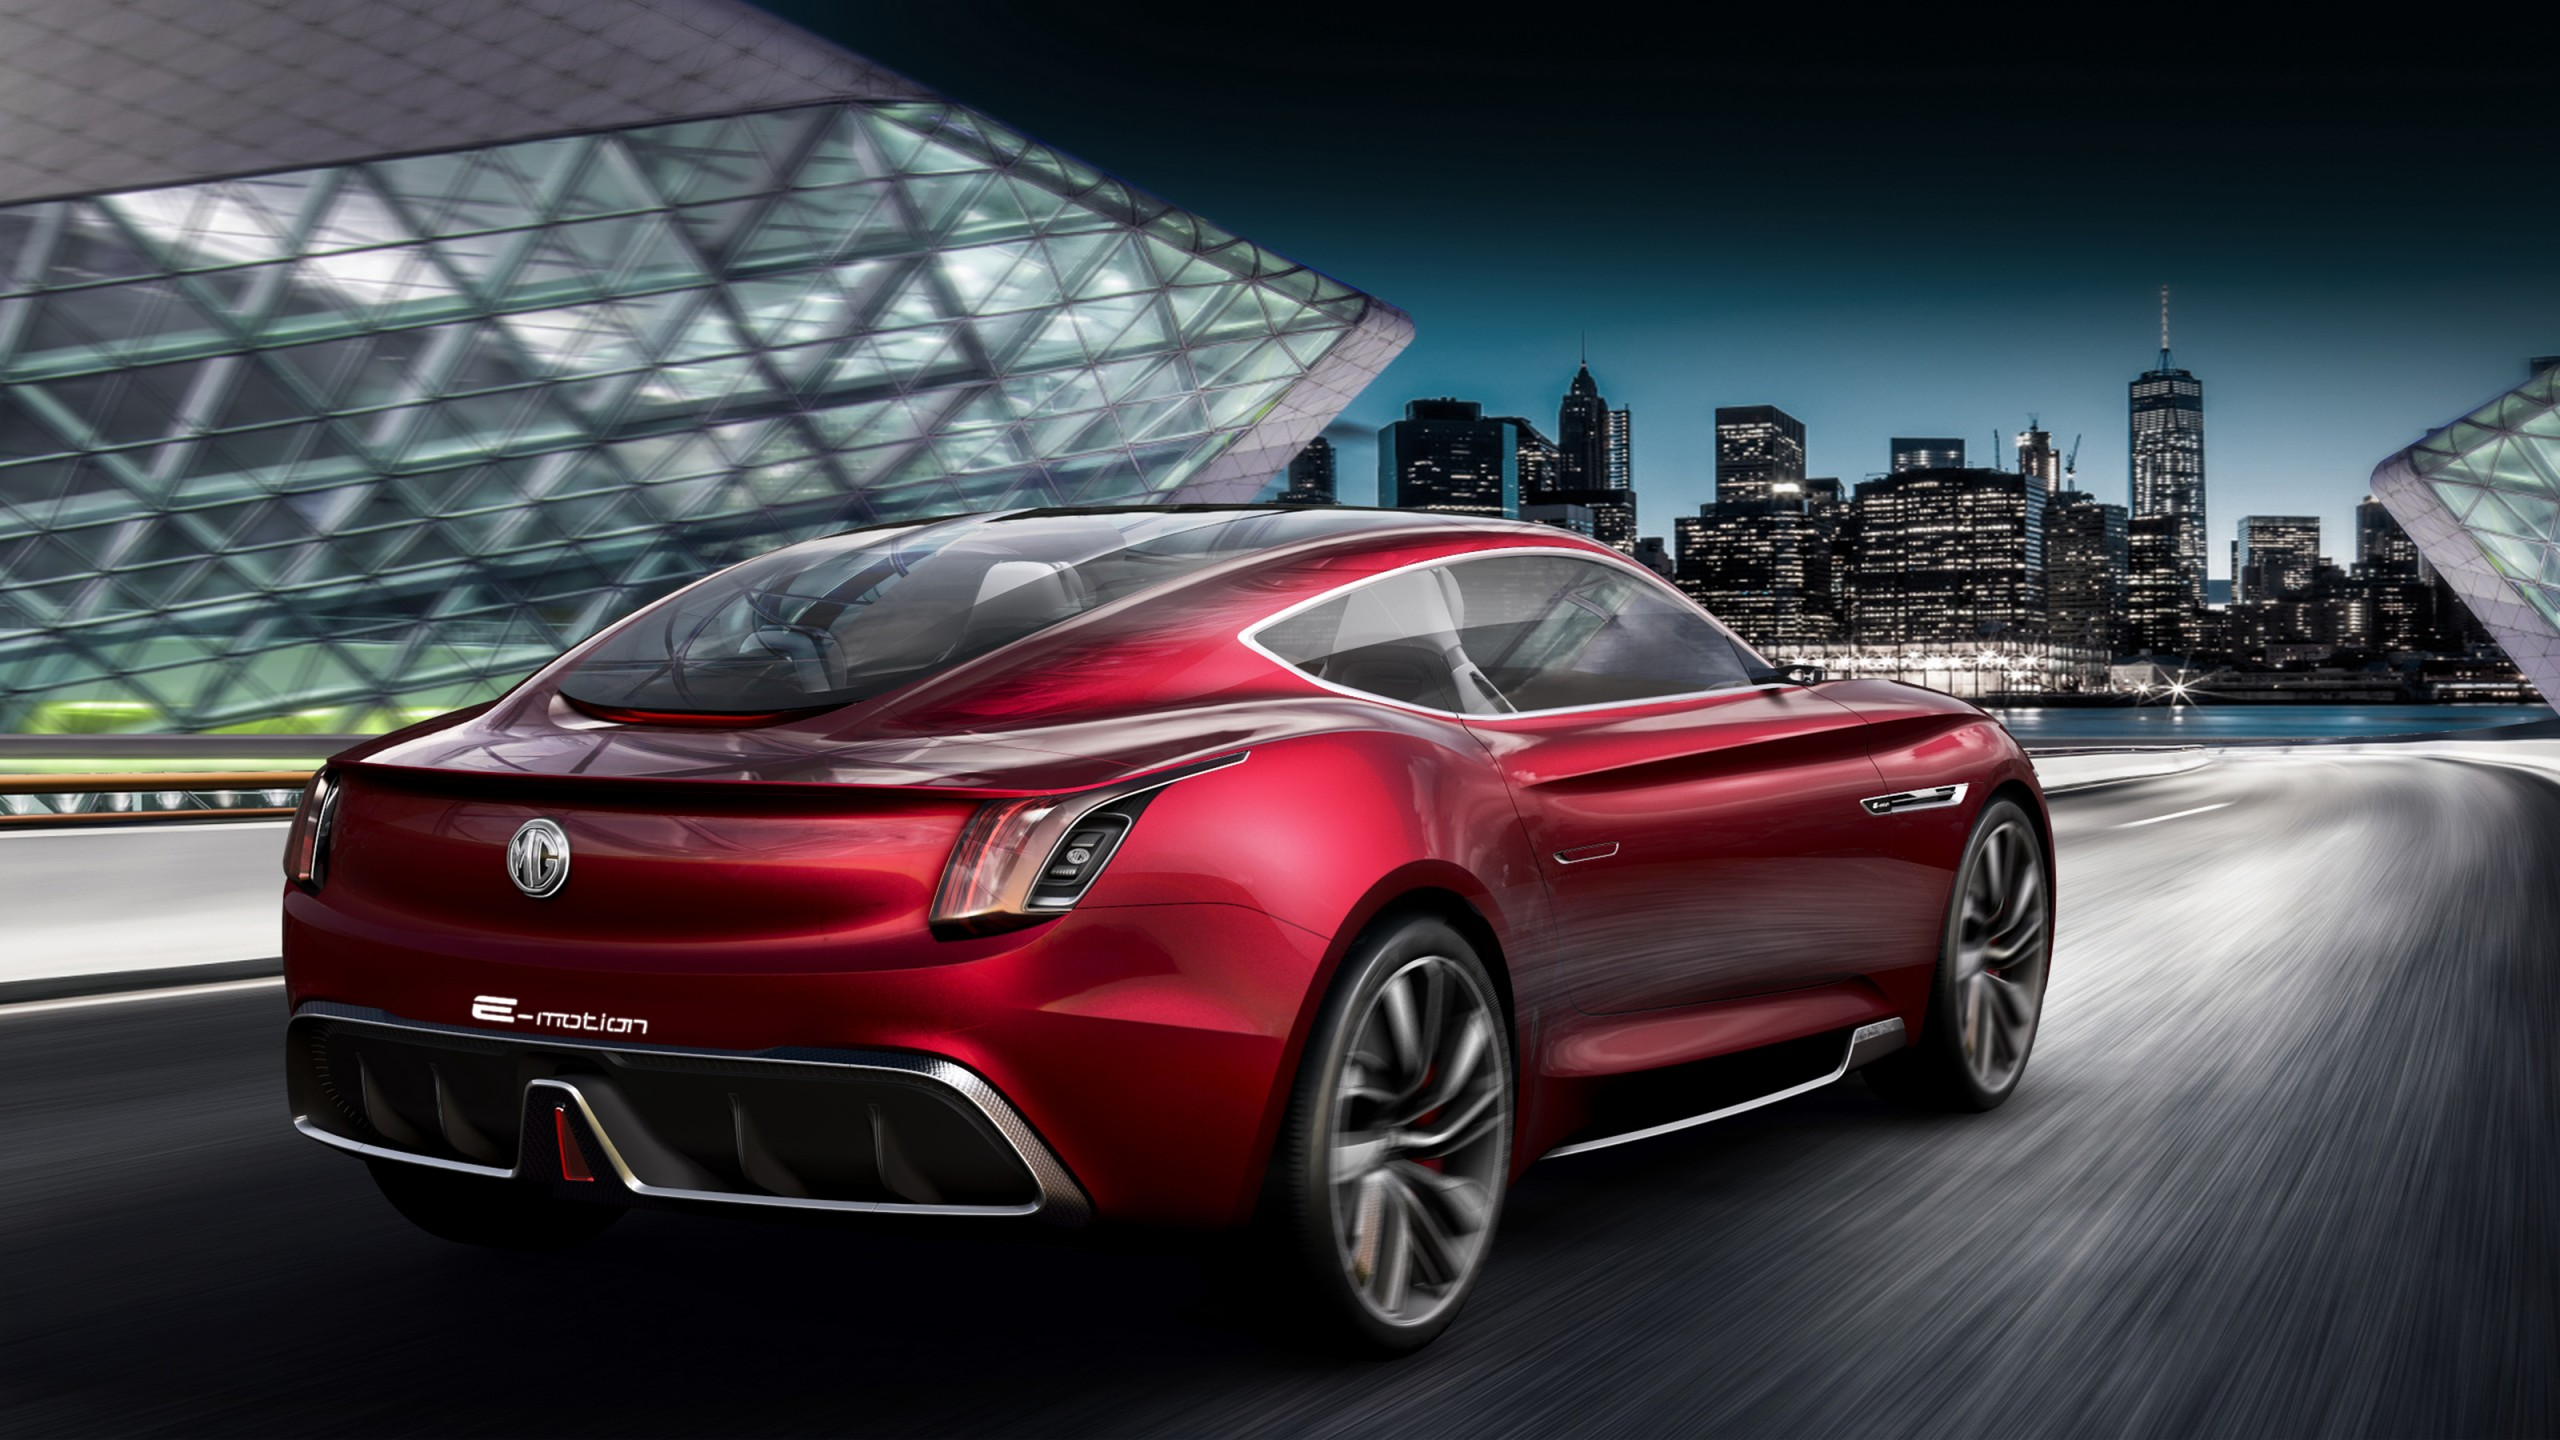 Car Wallpaper Cadillac 2018 Mg E Motion Concept Car 4 Wallpaper Hd Car Wallpapers